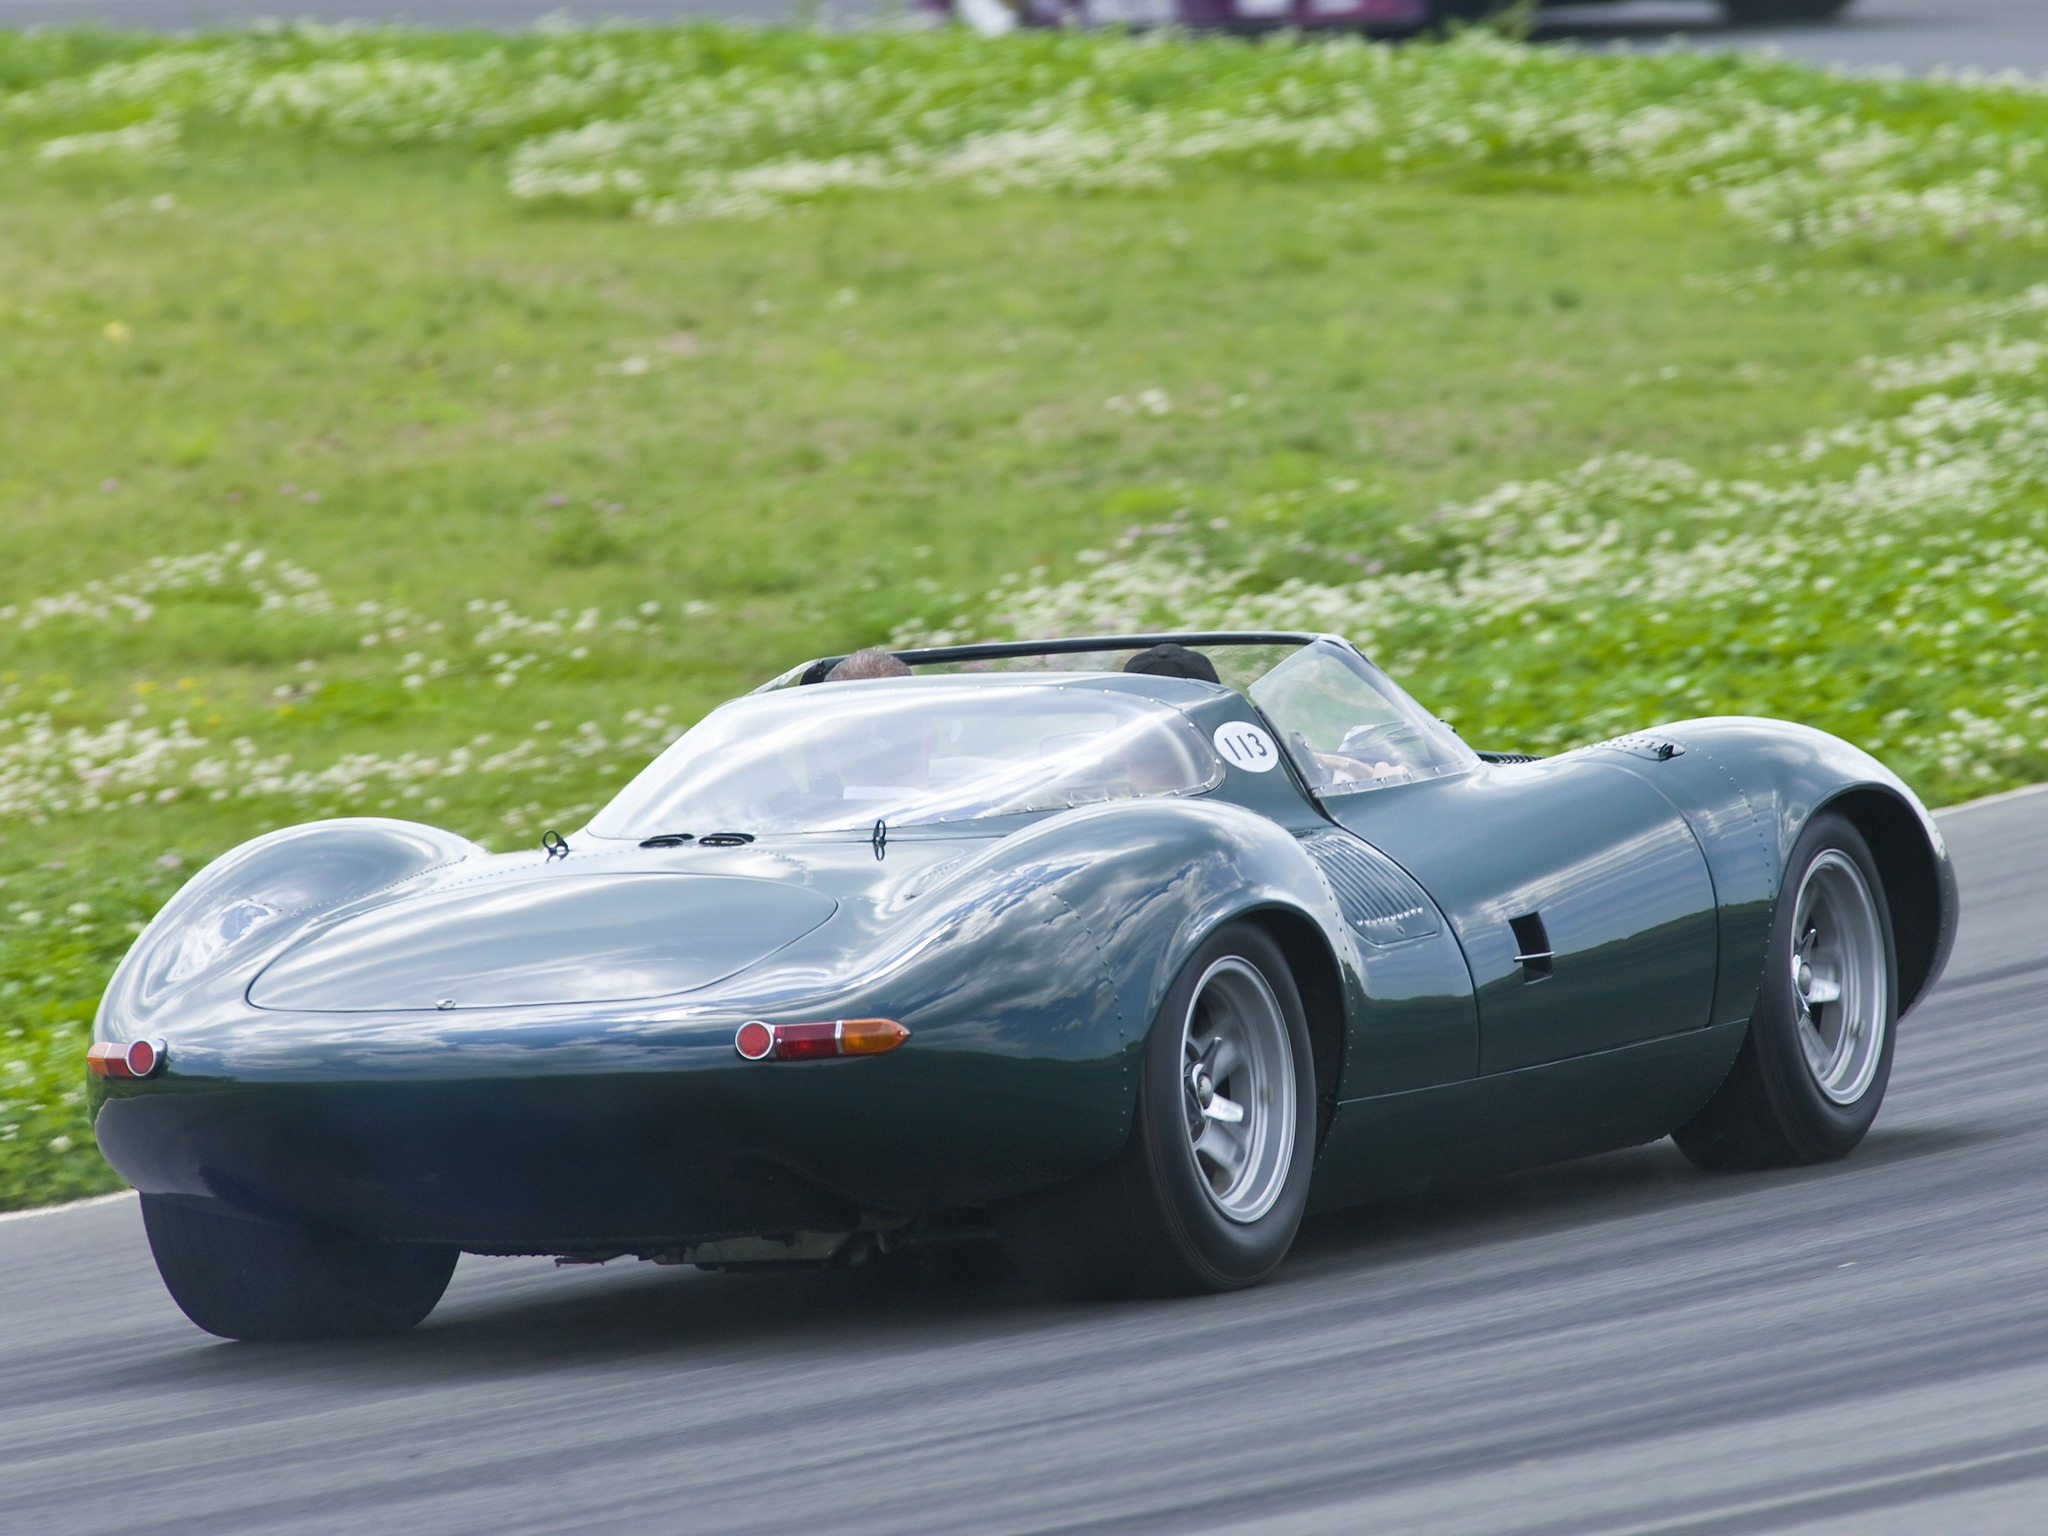 Exceptional ... Jaguar_xj13_v12_prototype_sports_racer_6  Jaguar_xj13_v12_prototype_sports_racer_7  Jaguar_xj13_v12_prototype_sports_racer_8 (2) ...